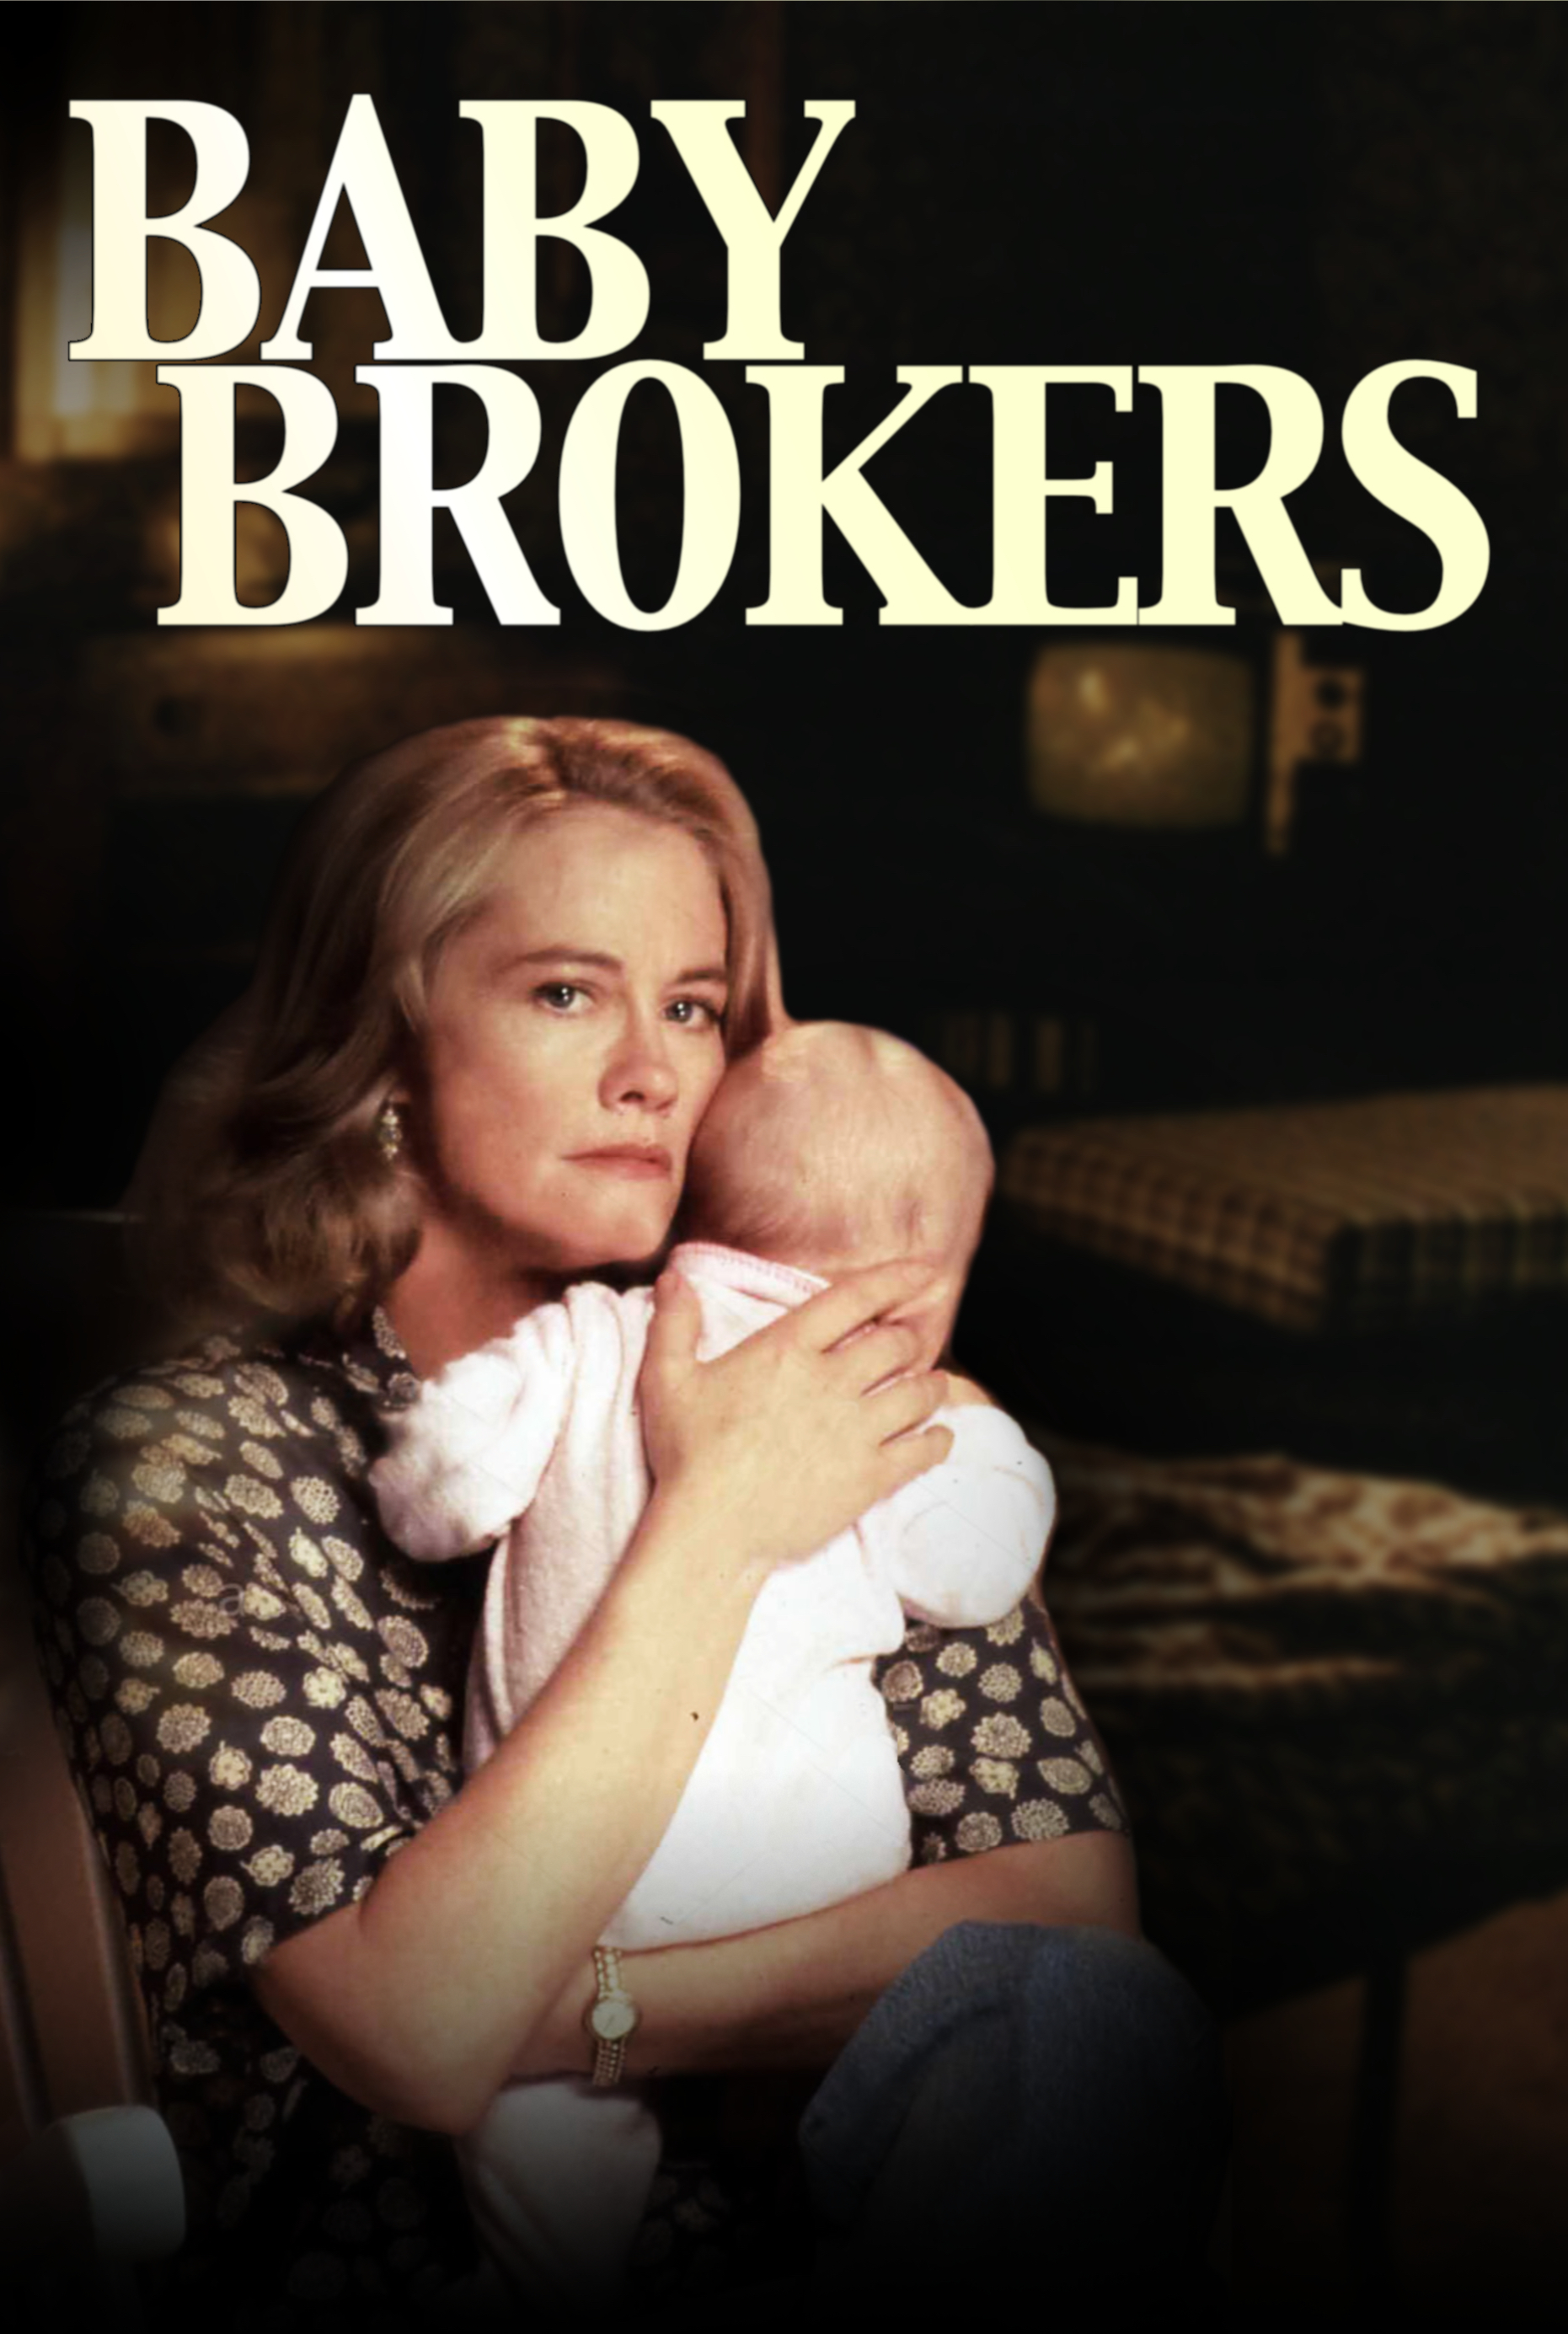 Baby Brokers - Score Catalog Artwork V1_Crop.jpg